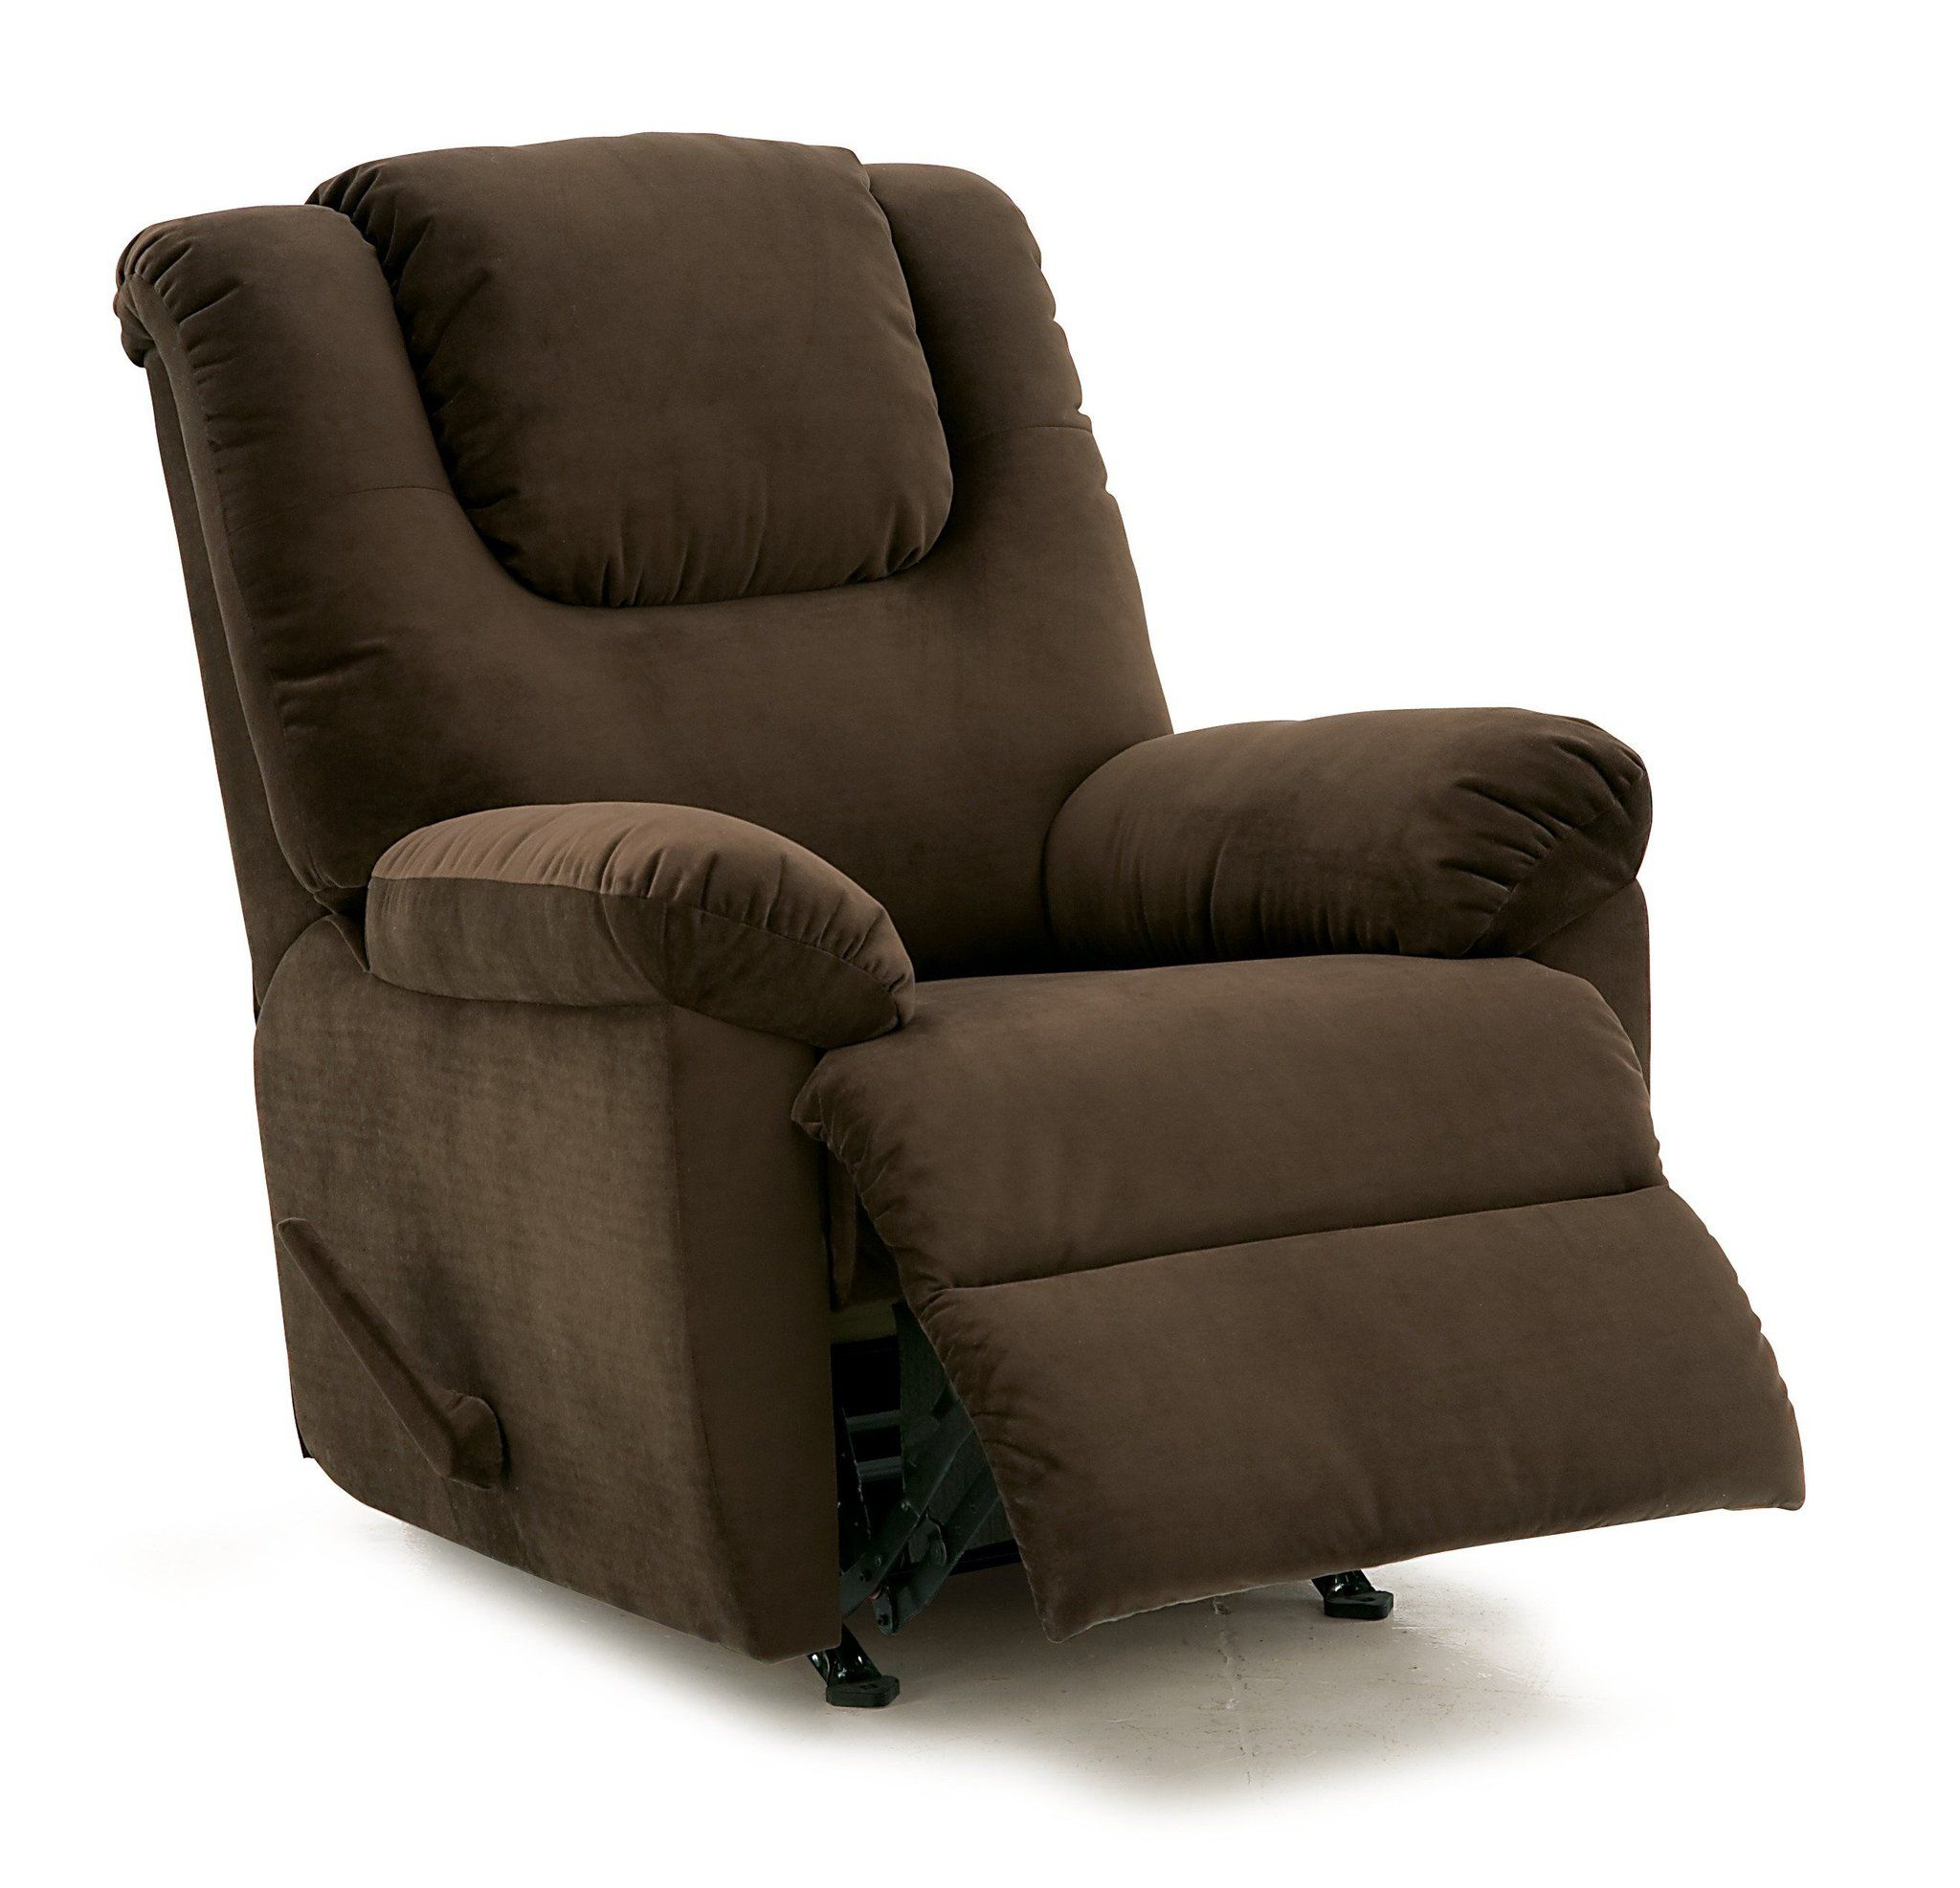 Tundra With Images Recliner Chair Small Recliner Chairs